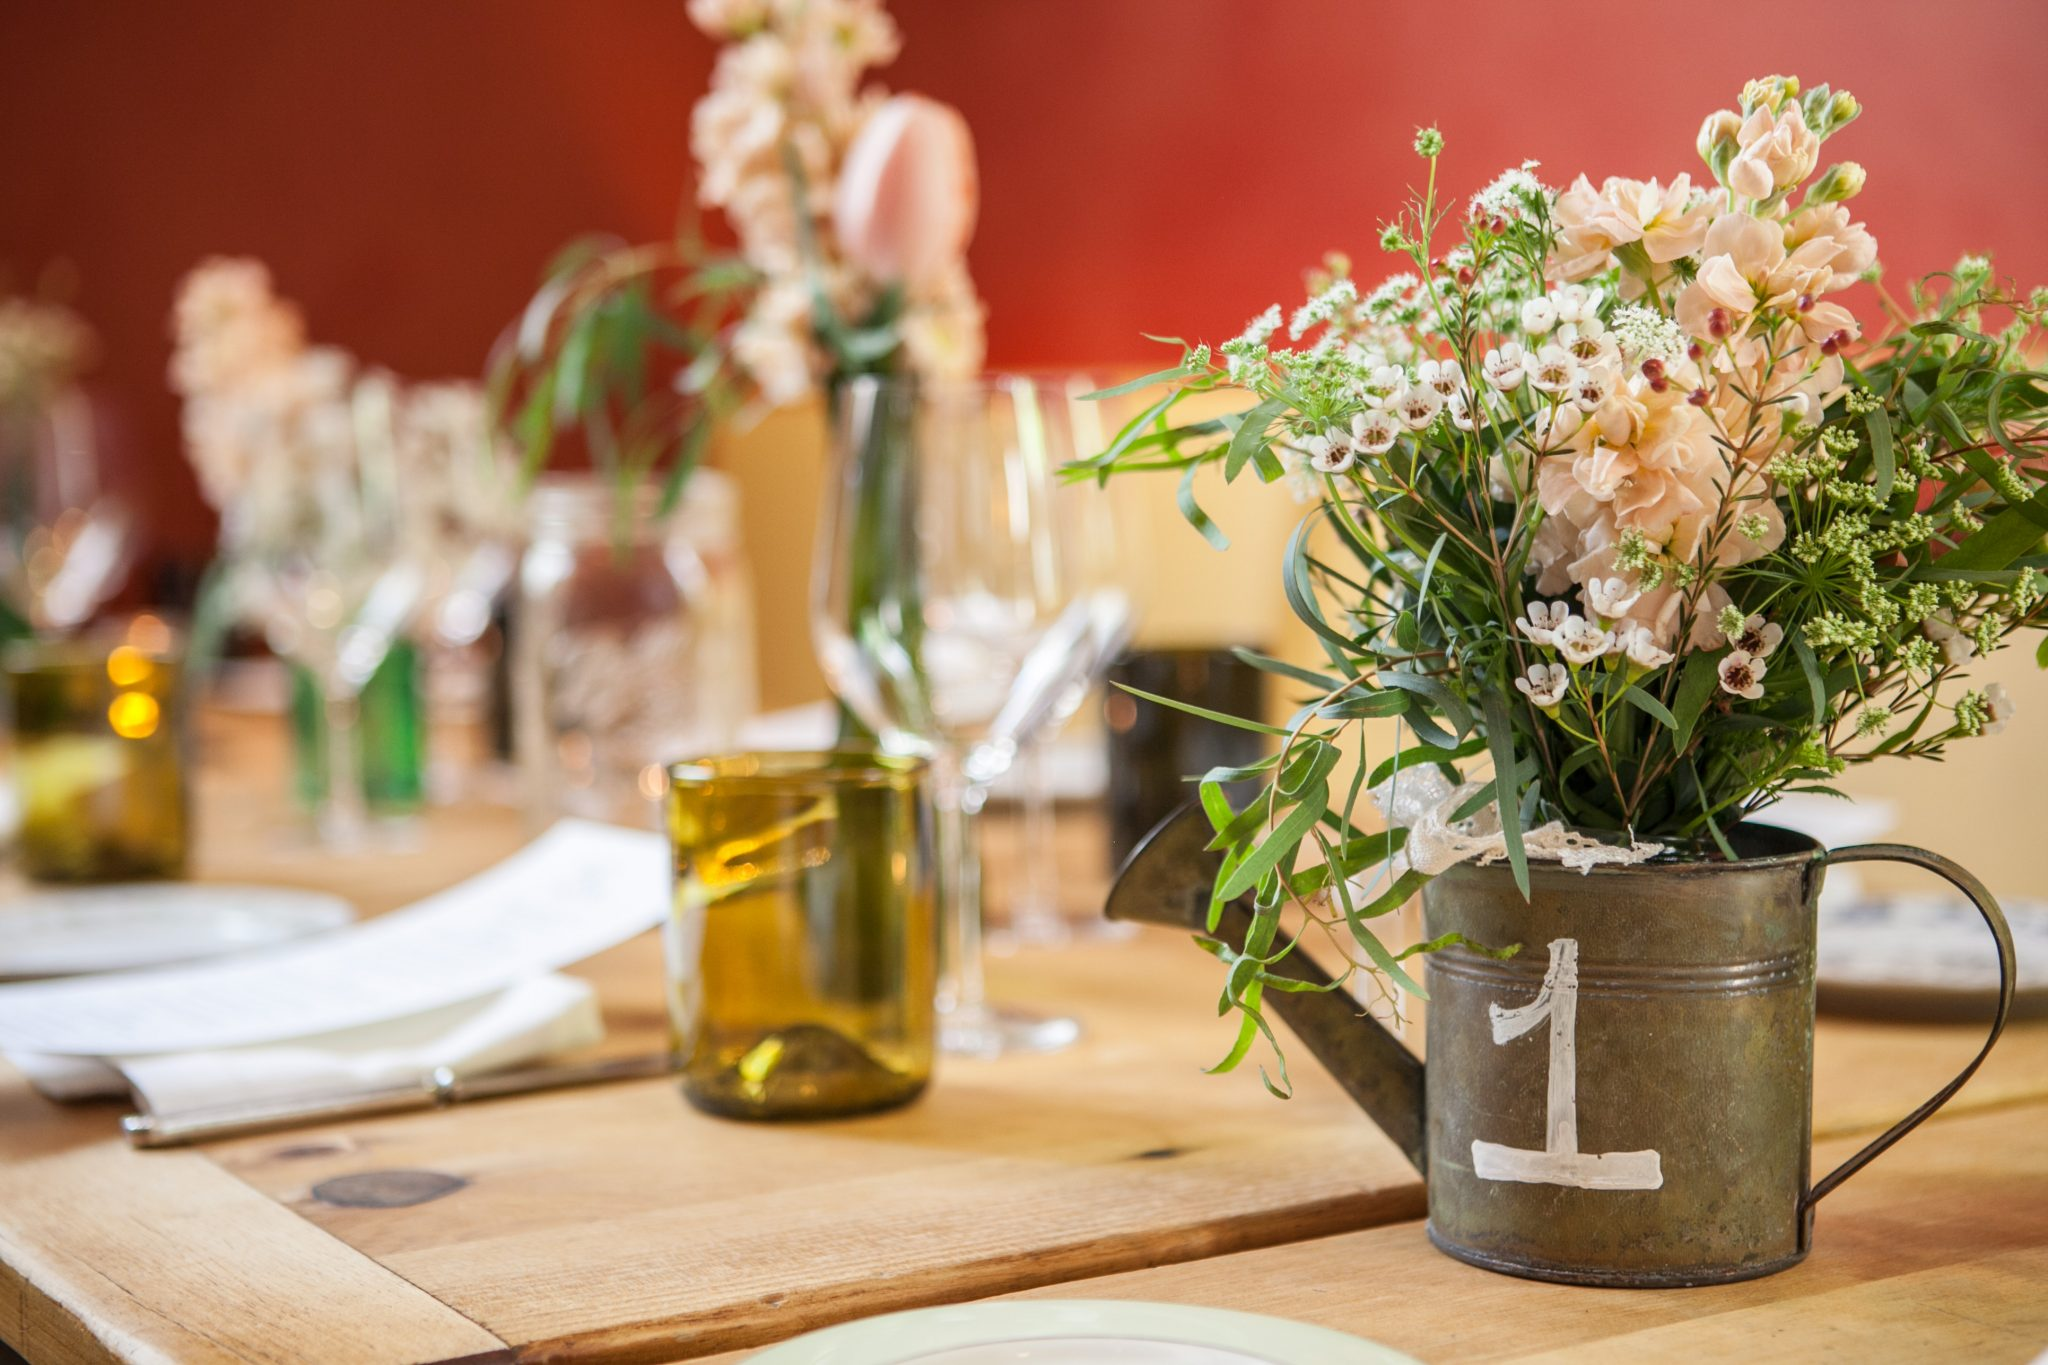 Sweet and simple centerpieces for a wedding at Talula's Garden. | www.TheStyledBride.com